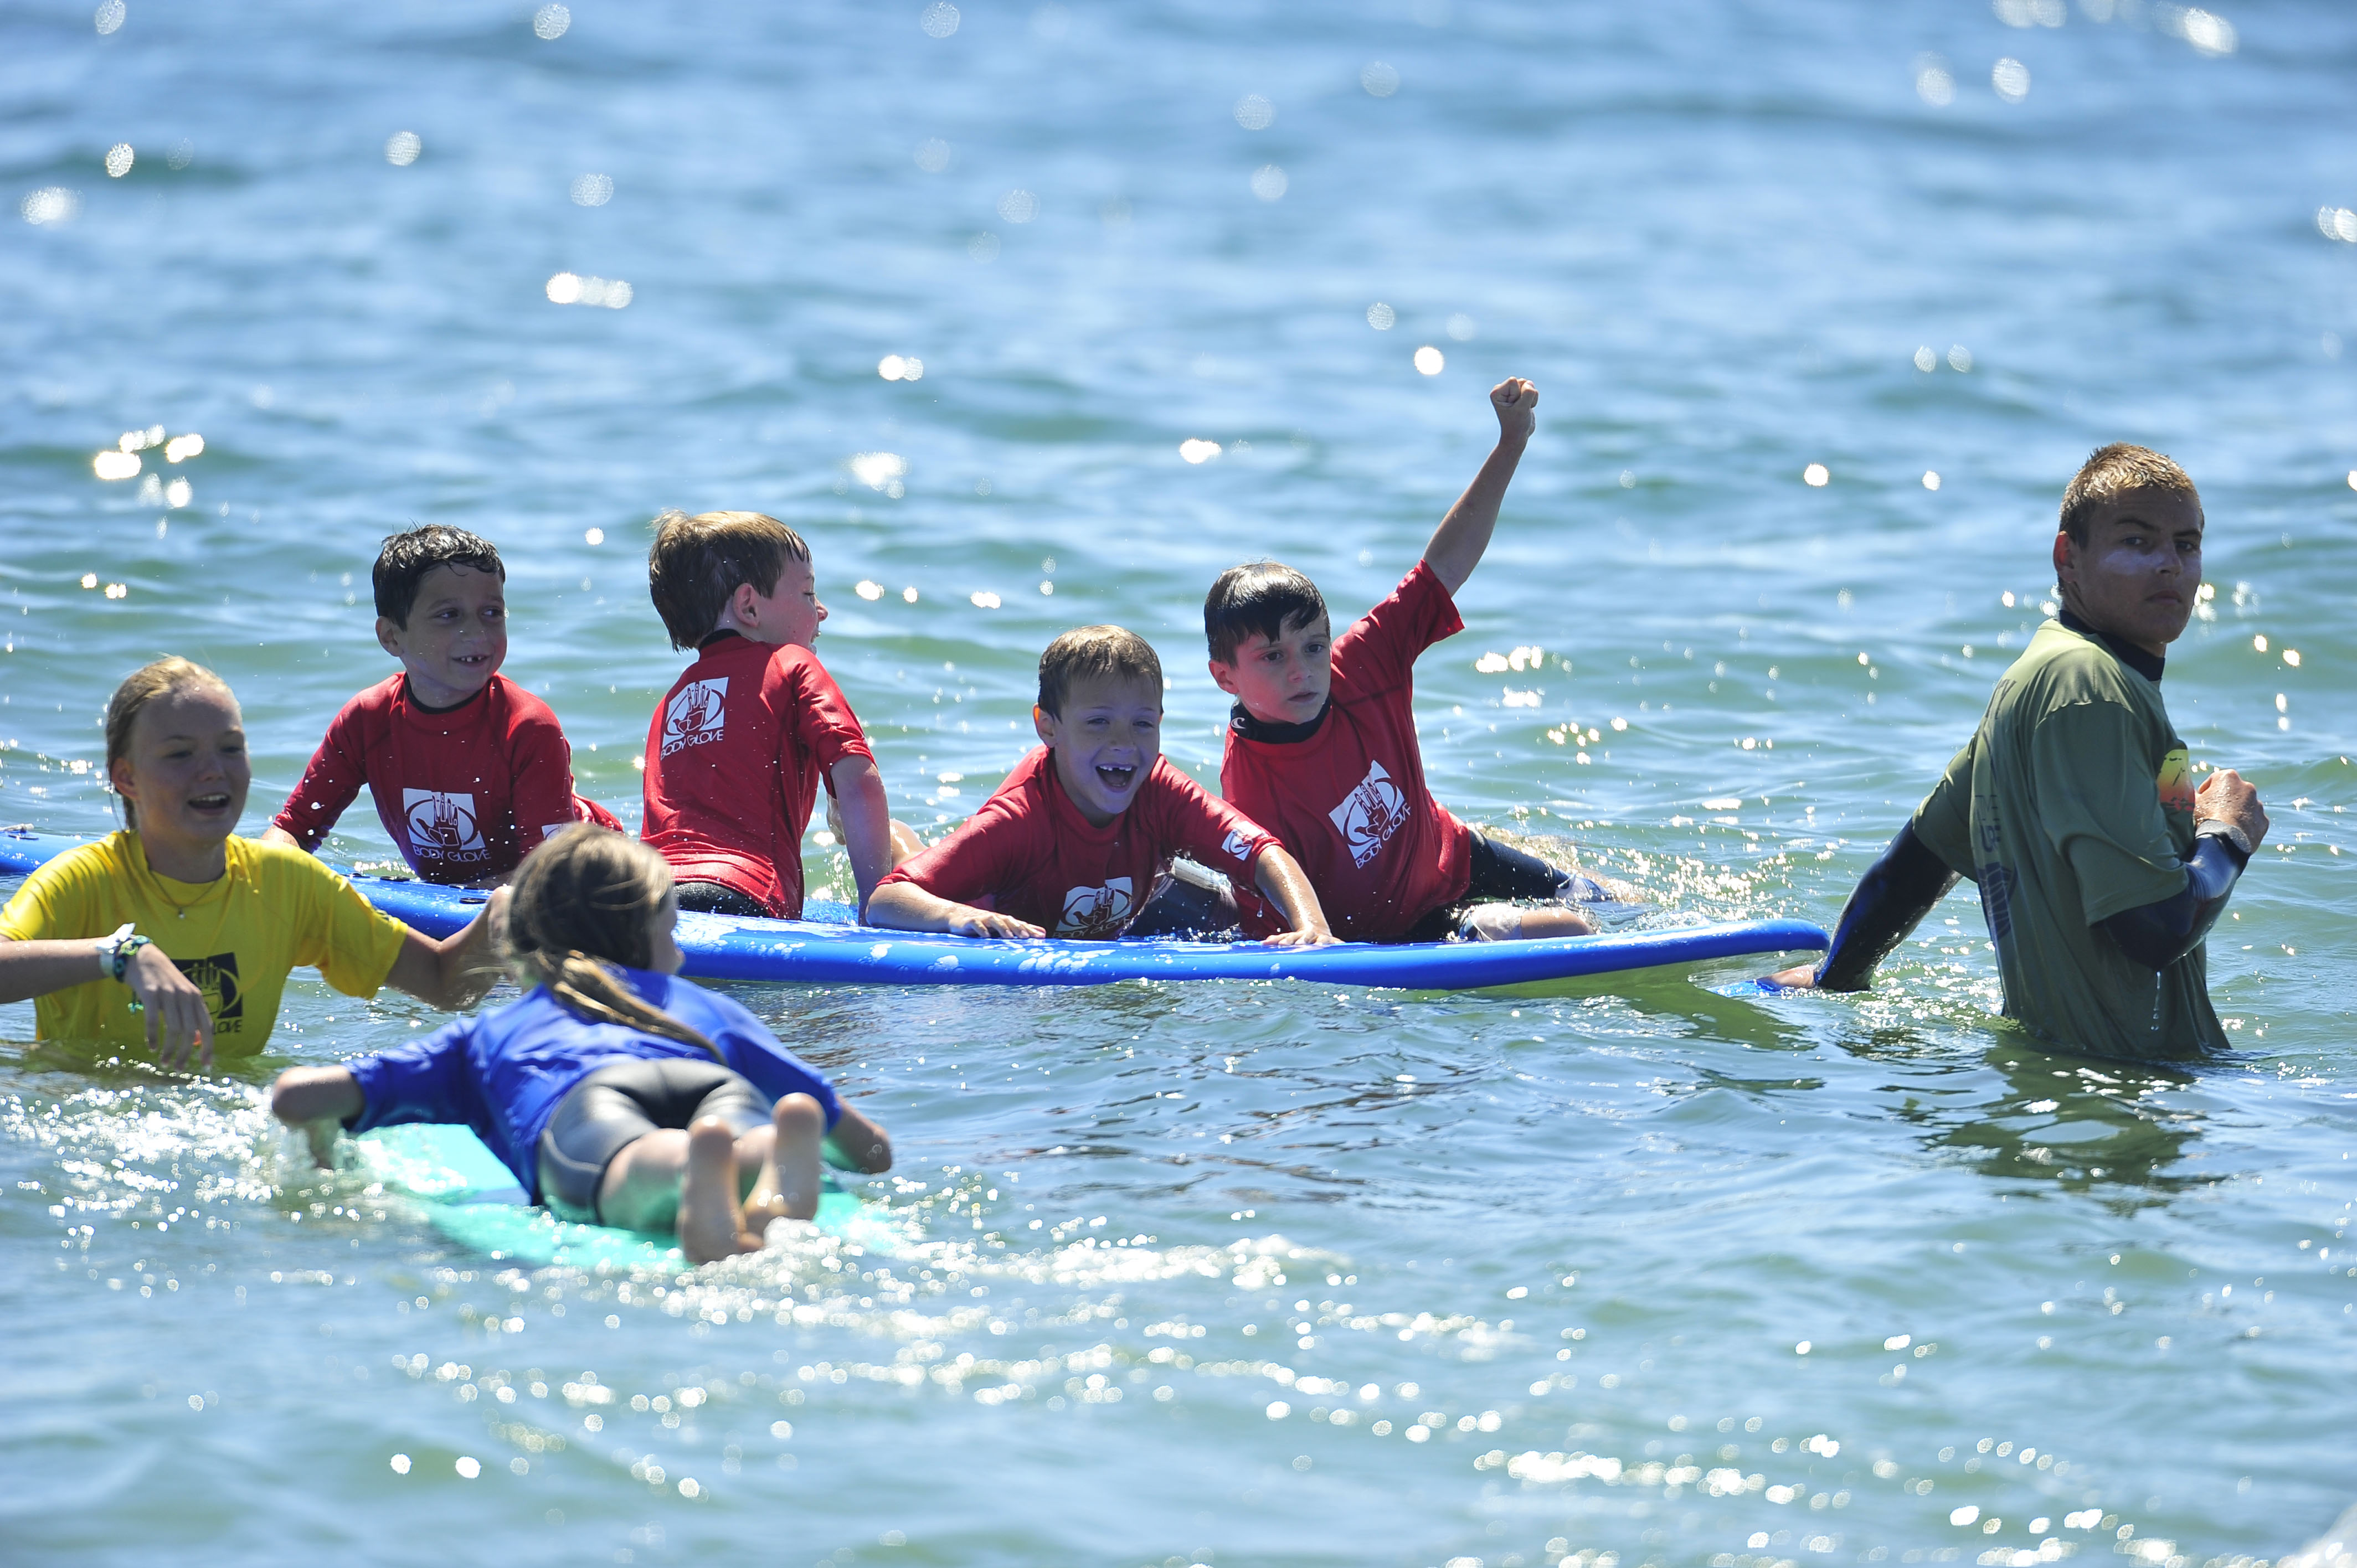 Summertime Surf & Paddle Schools surfing lessons nyc